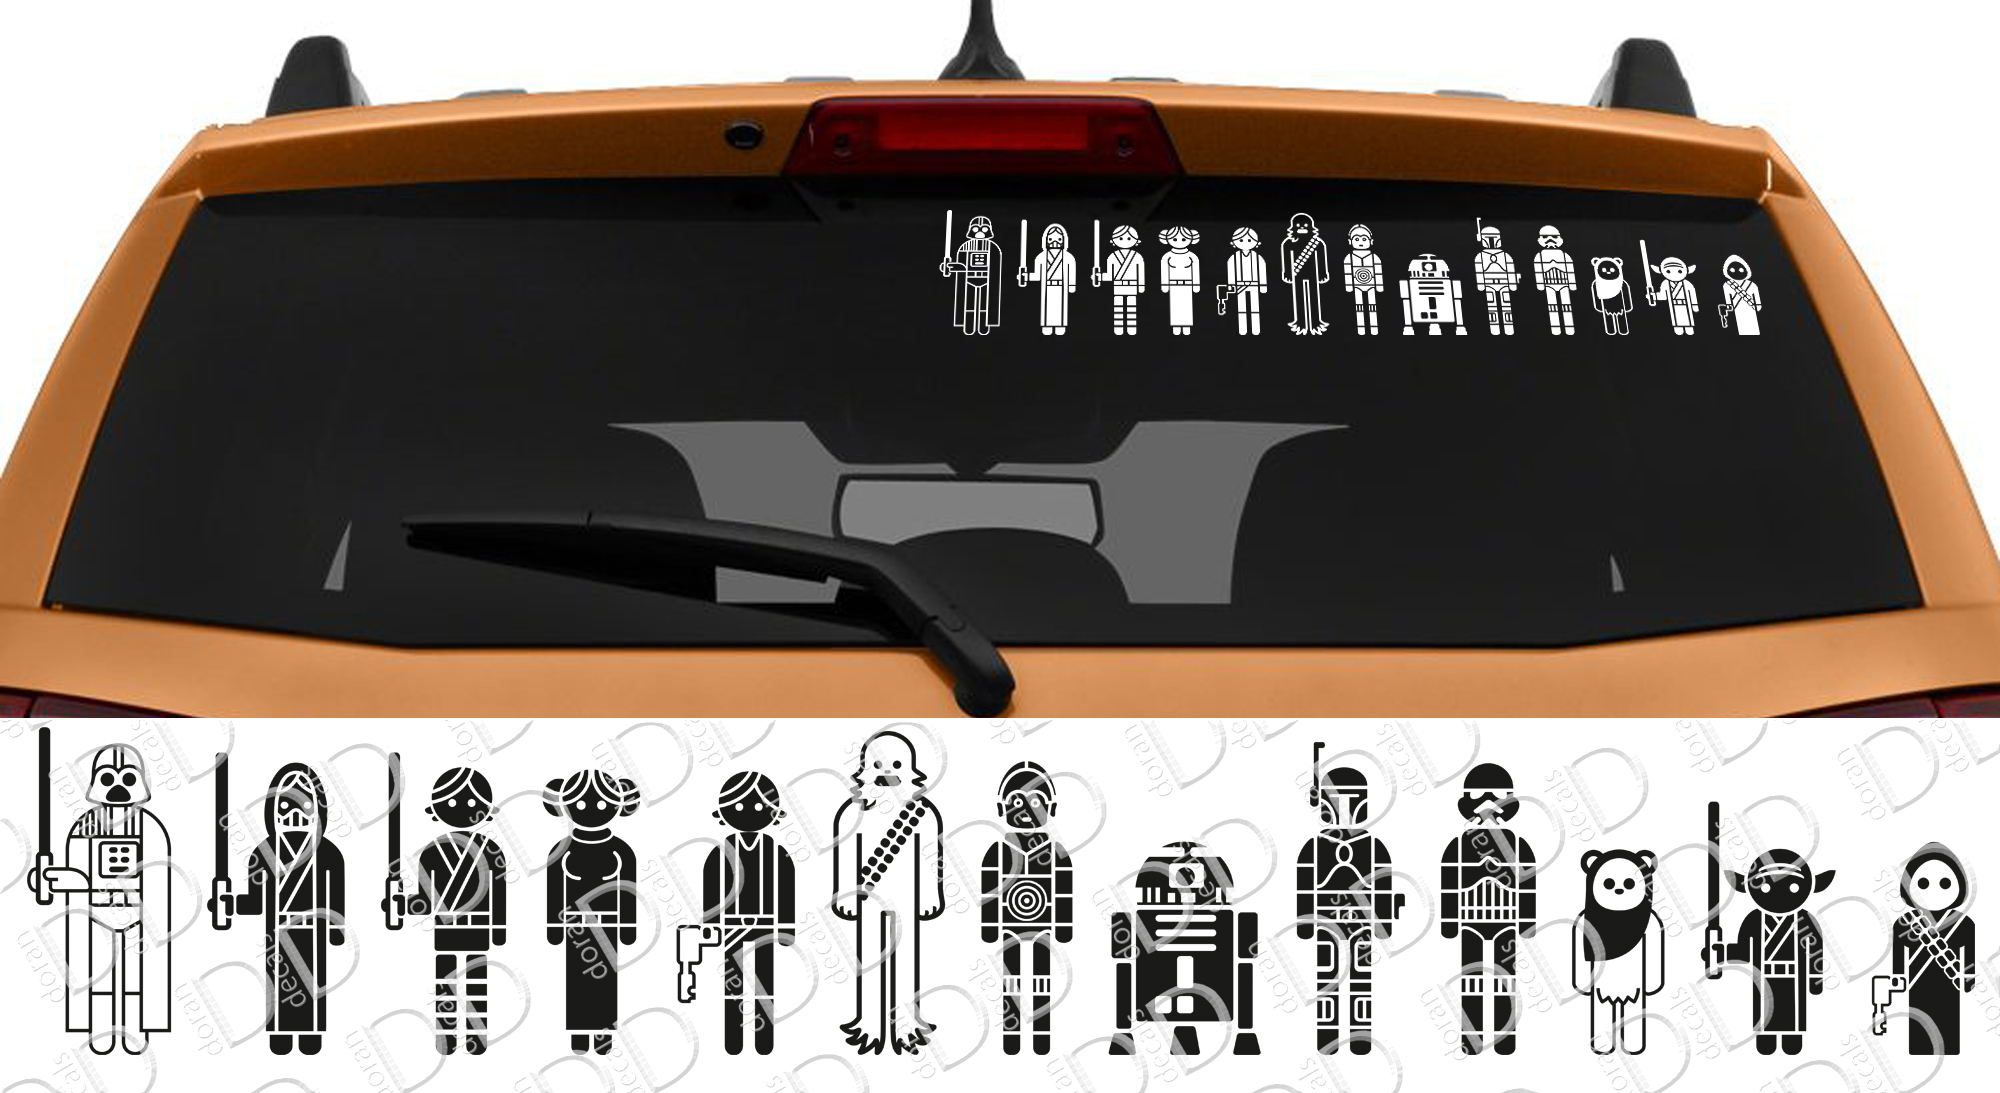 13in1 Family Skywalker Darth Leia Rebel Galactic Empire Jedi R2 D2 Car Laptop Vinyl Sticker Decal